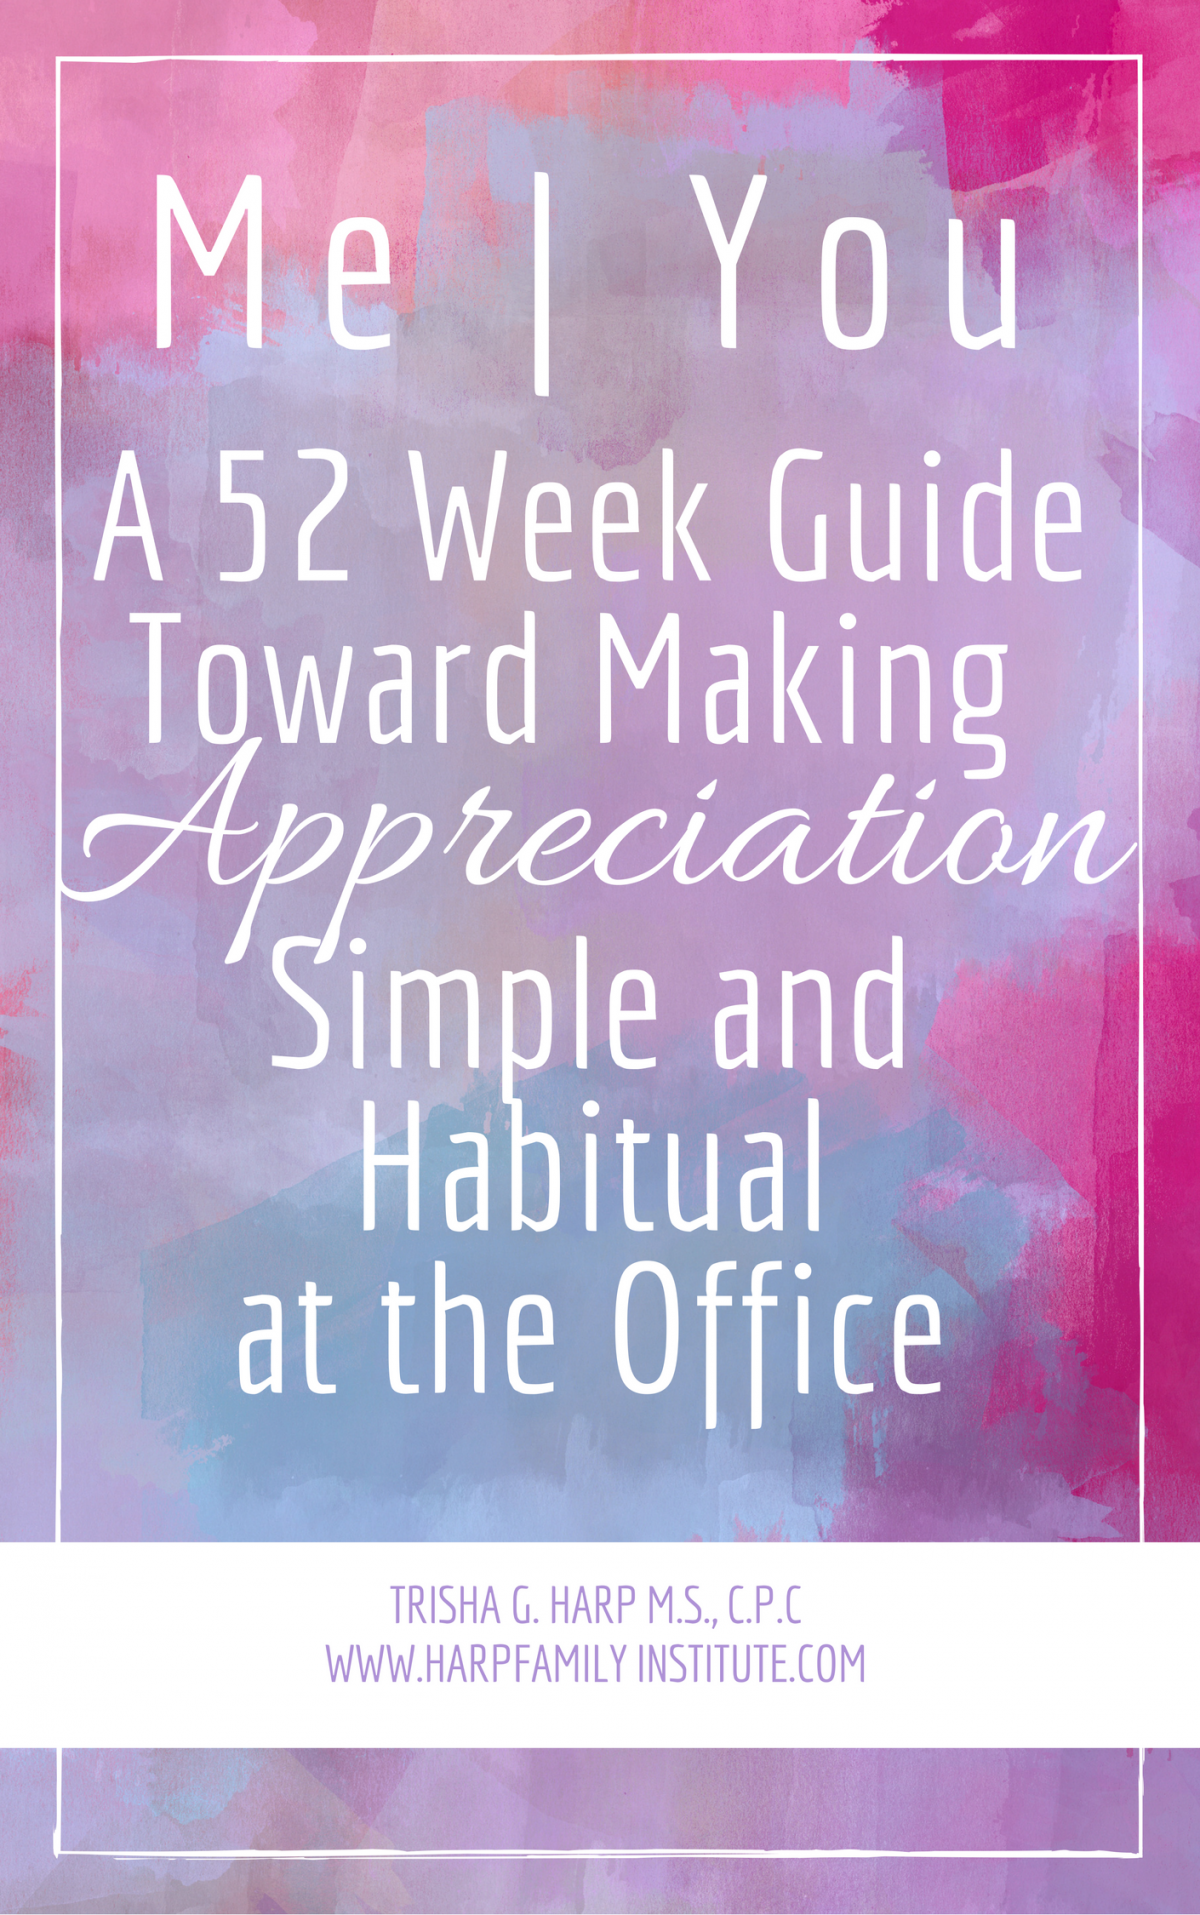 Me | You A 52 Week Guide Toward Making Appreciation Simple and Habitual at the Office